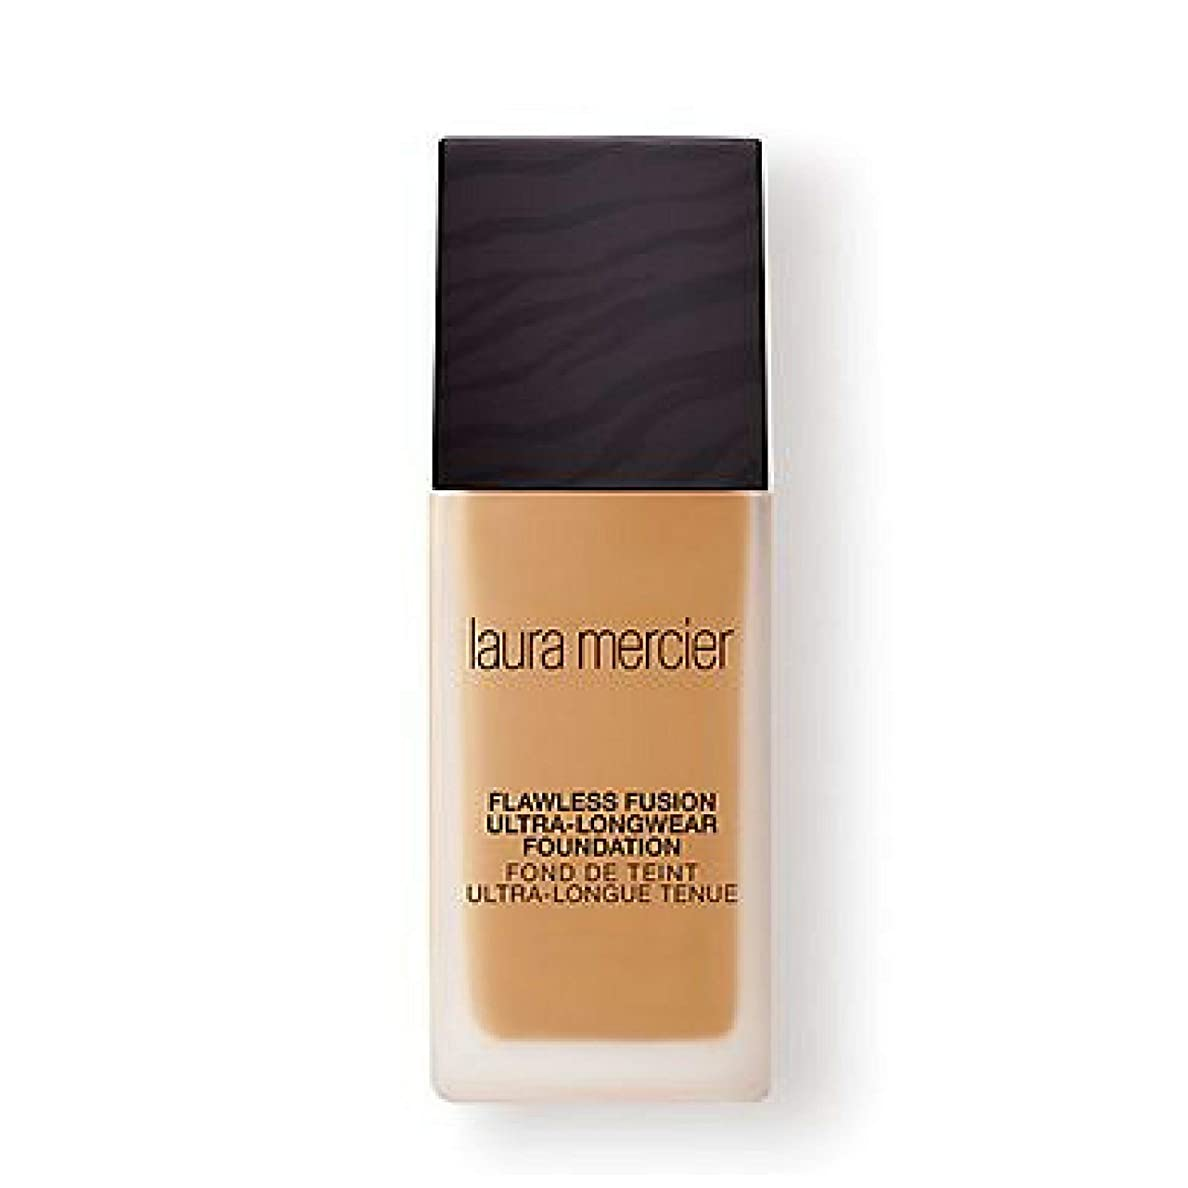 静的してはいけませんパイLaura Mercier Flawless Fusion Ultra-Longwear Foundation - Dune 1oz (29ml)